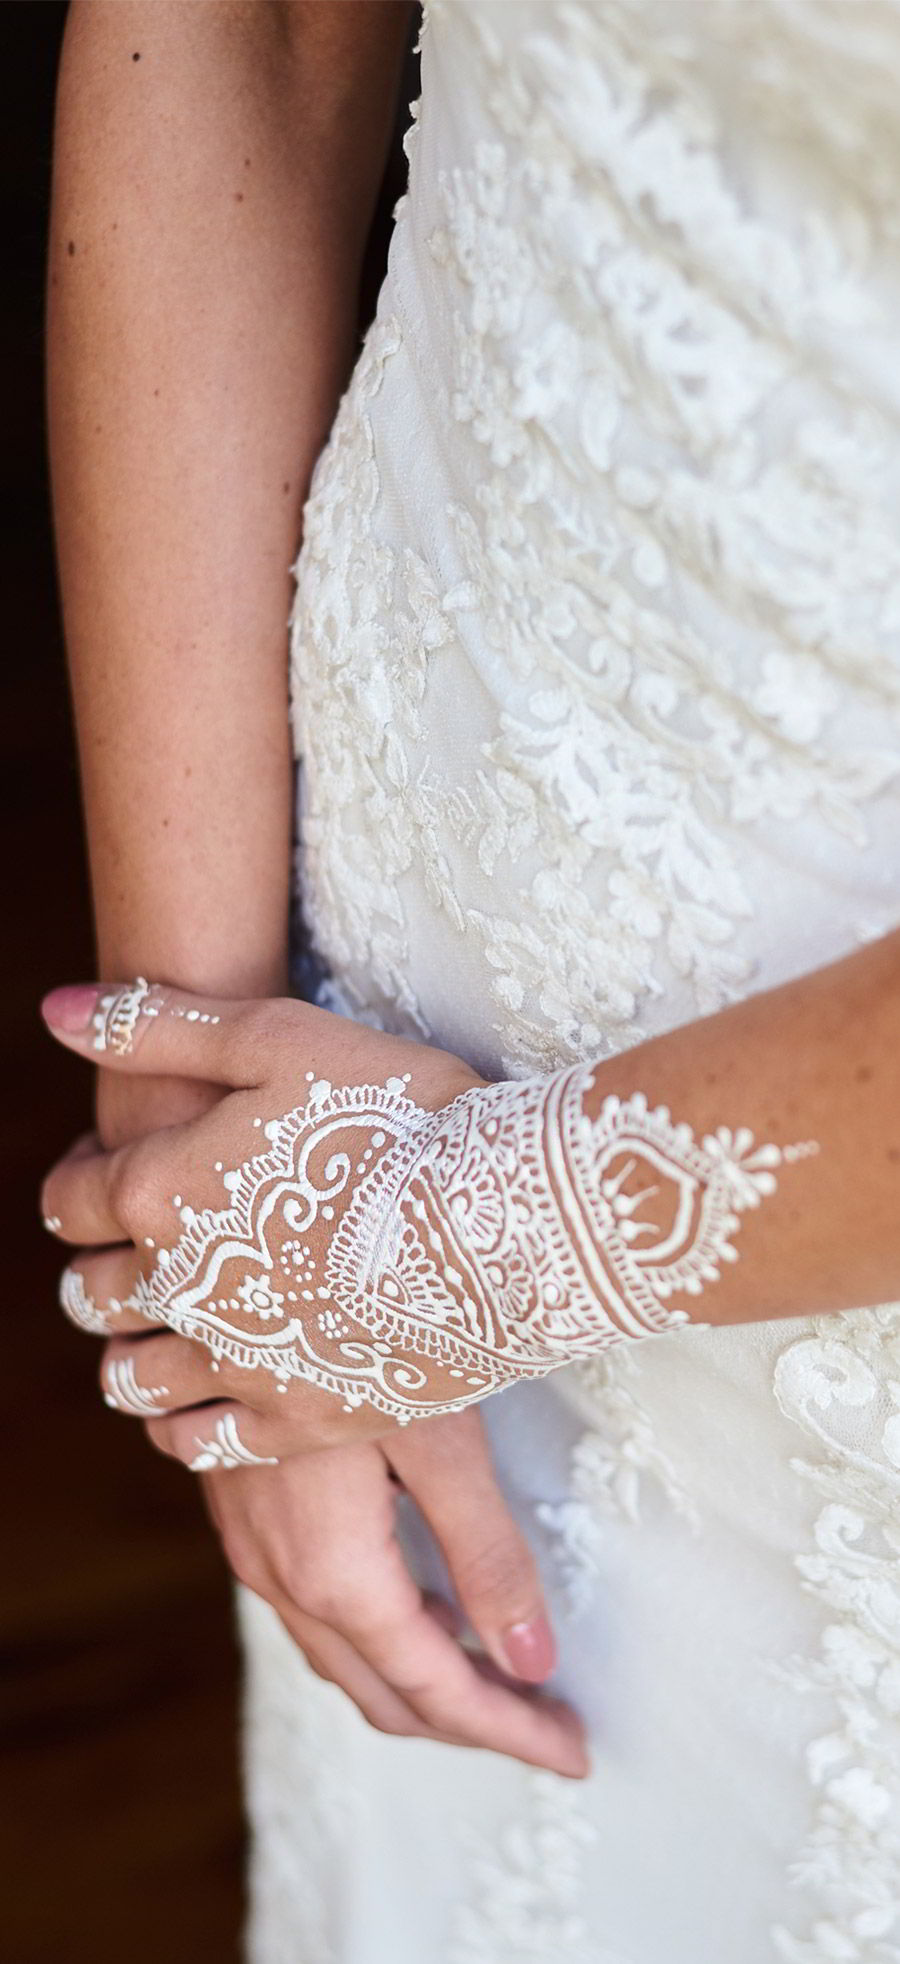 lavender field wedding photo shoot adorn invitations purple gold boho luxe inspiration white henna tattoo